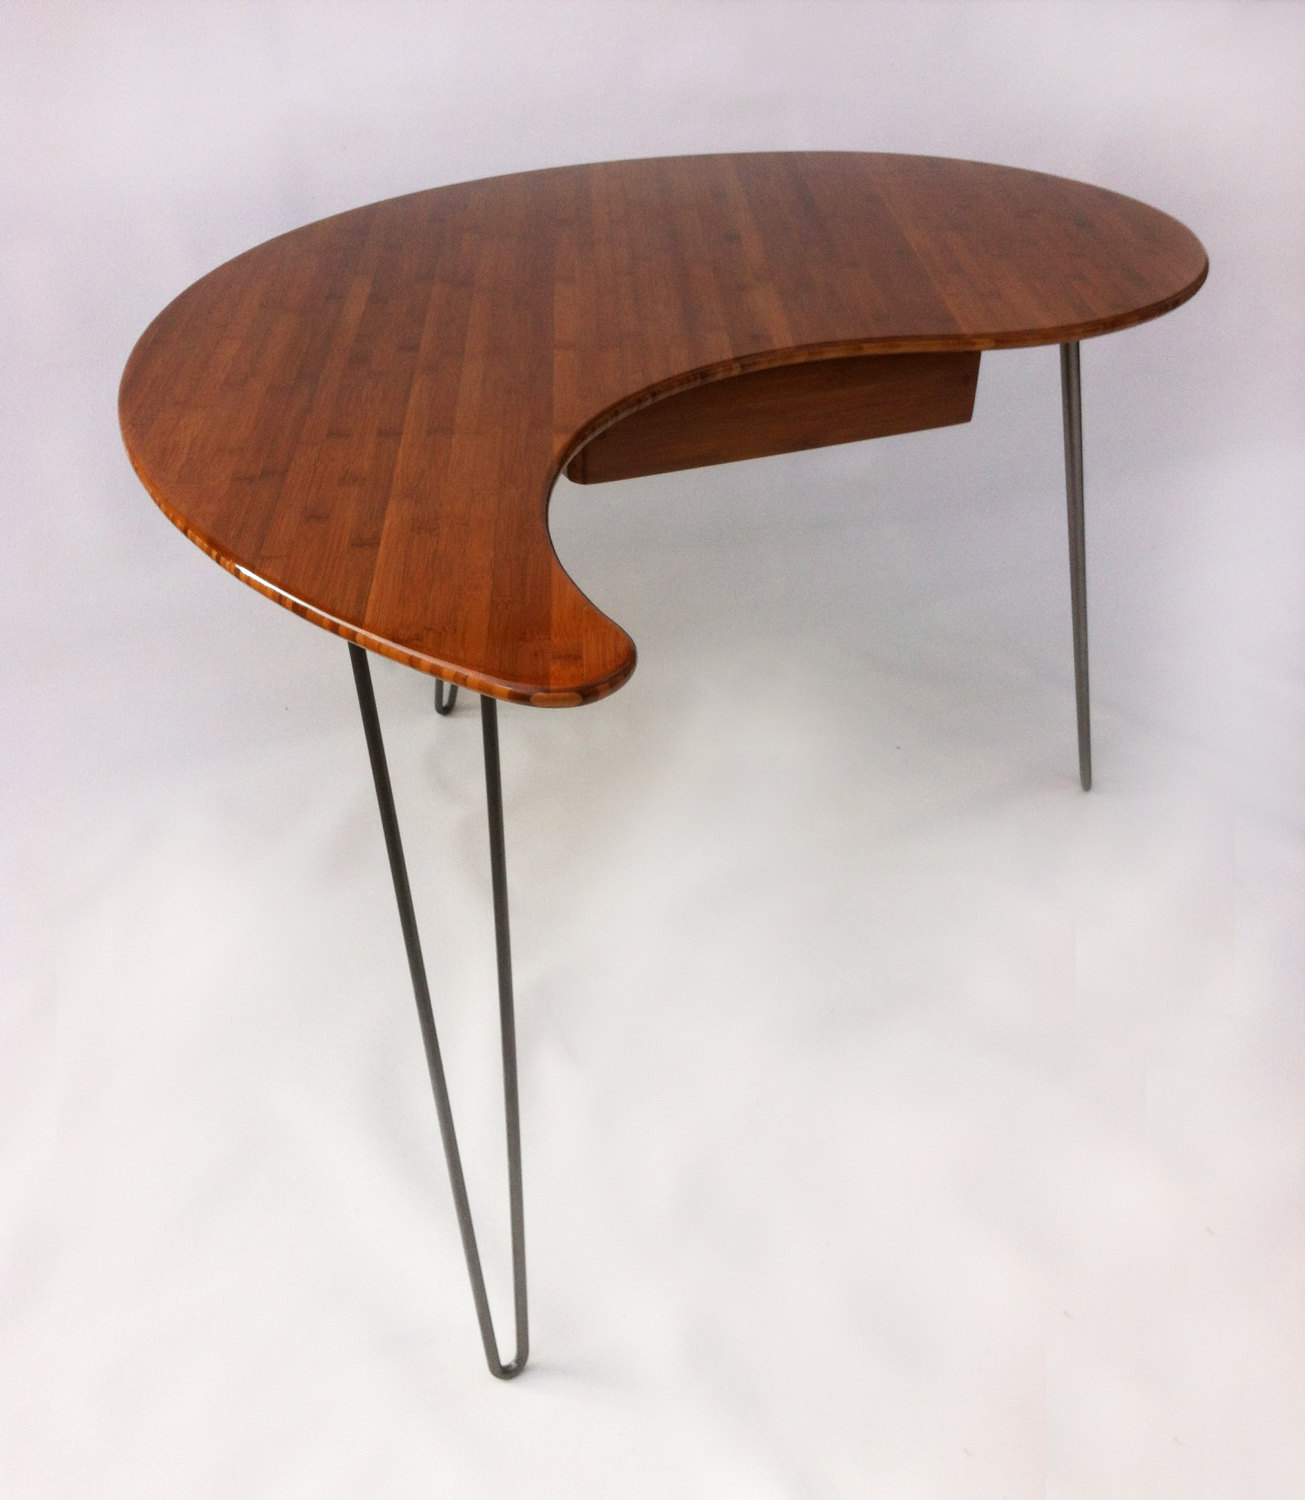 Desks With Drawers Yin Yang Desks With Drawers Mid Century Modern Atomic Era Design In Bamboo Comes As A Pair Of Two